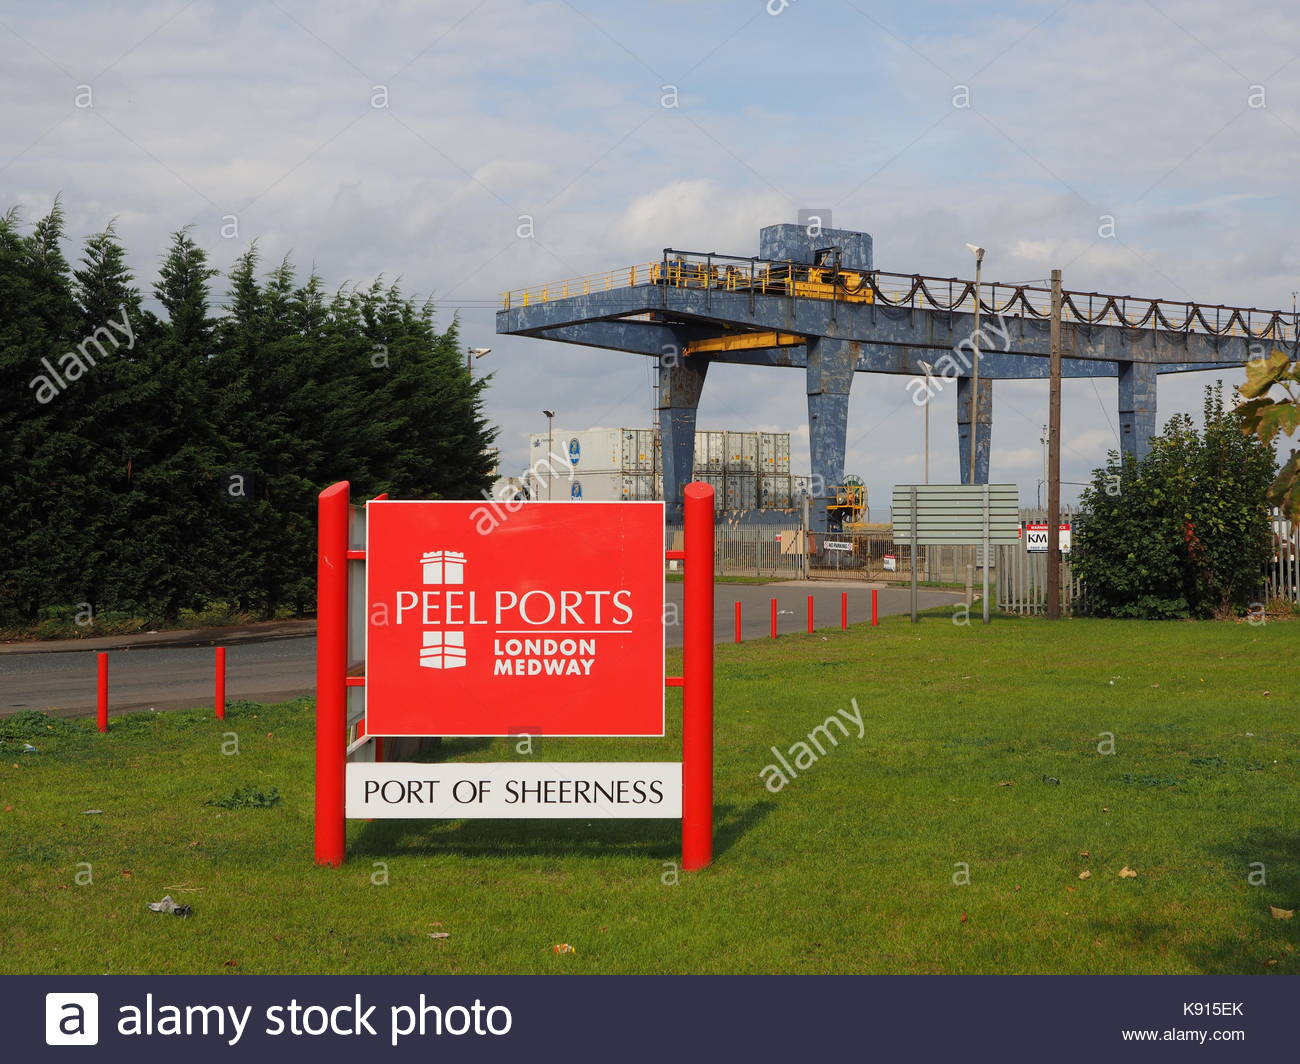 Kent Photos Stock Photos Amp Kent Photos Stock Images Alamy